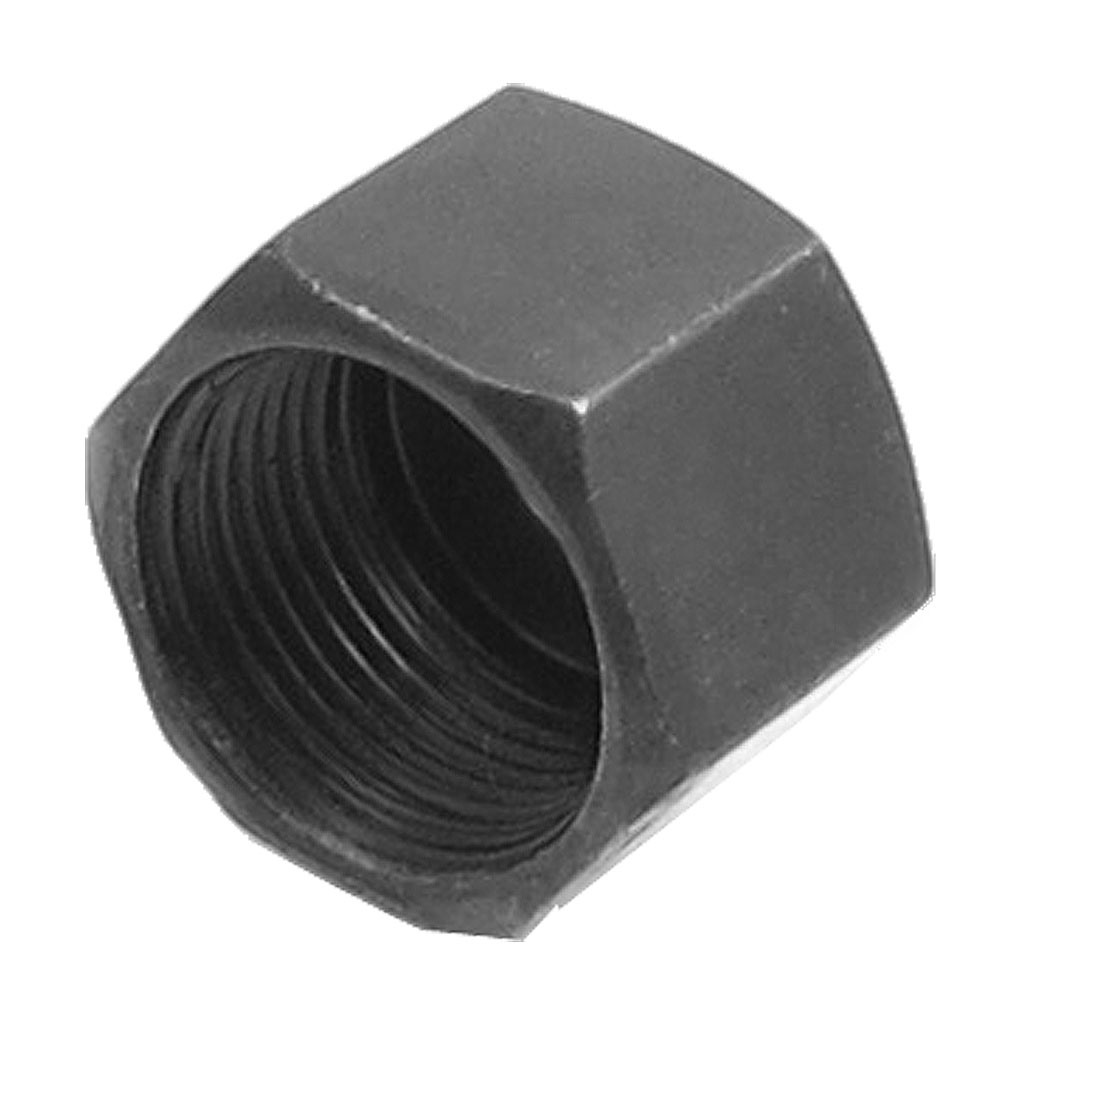 14mm Female Thread Hex Shaft Nut for LG G506 Angle Grinder